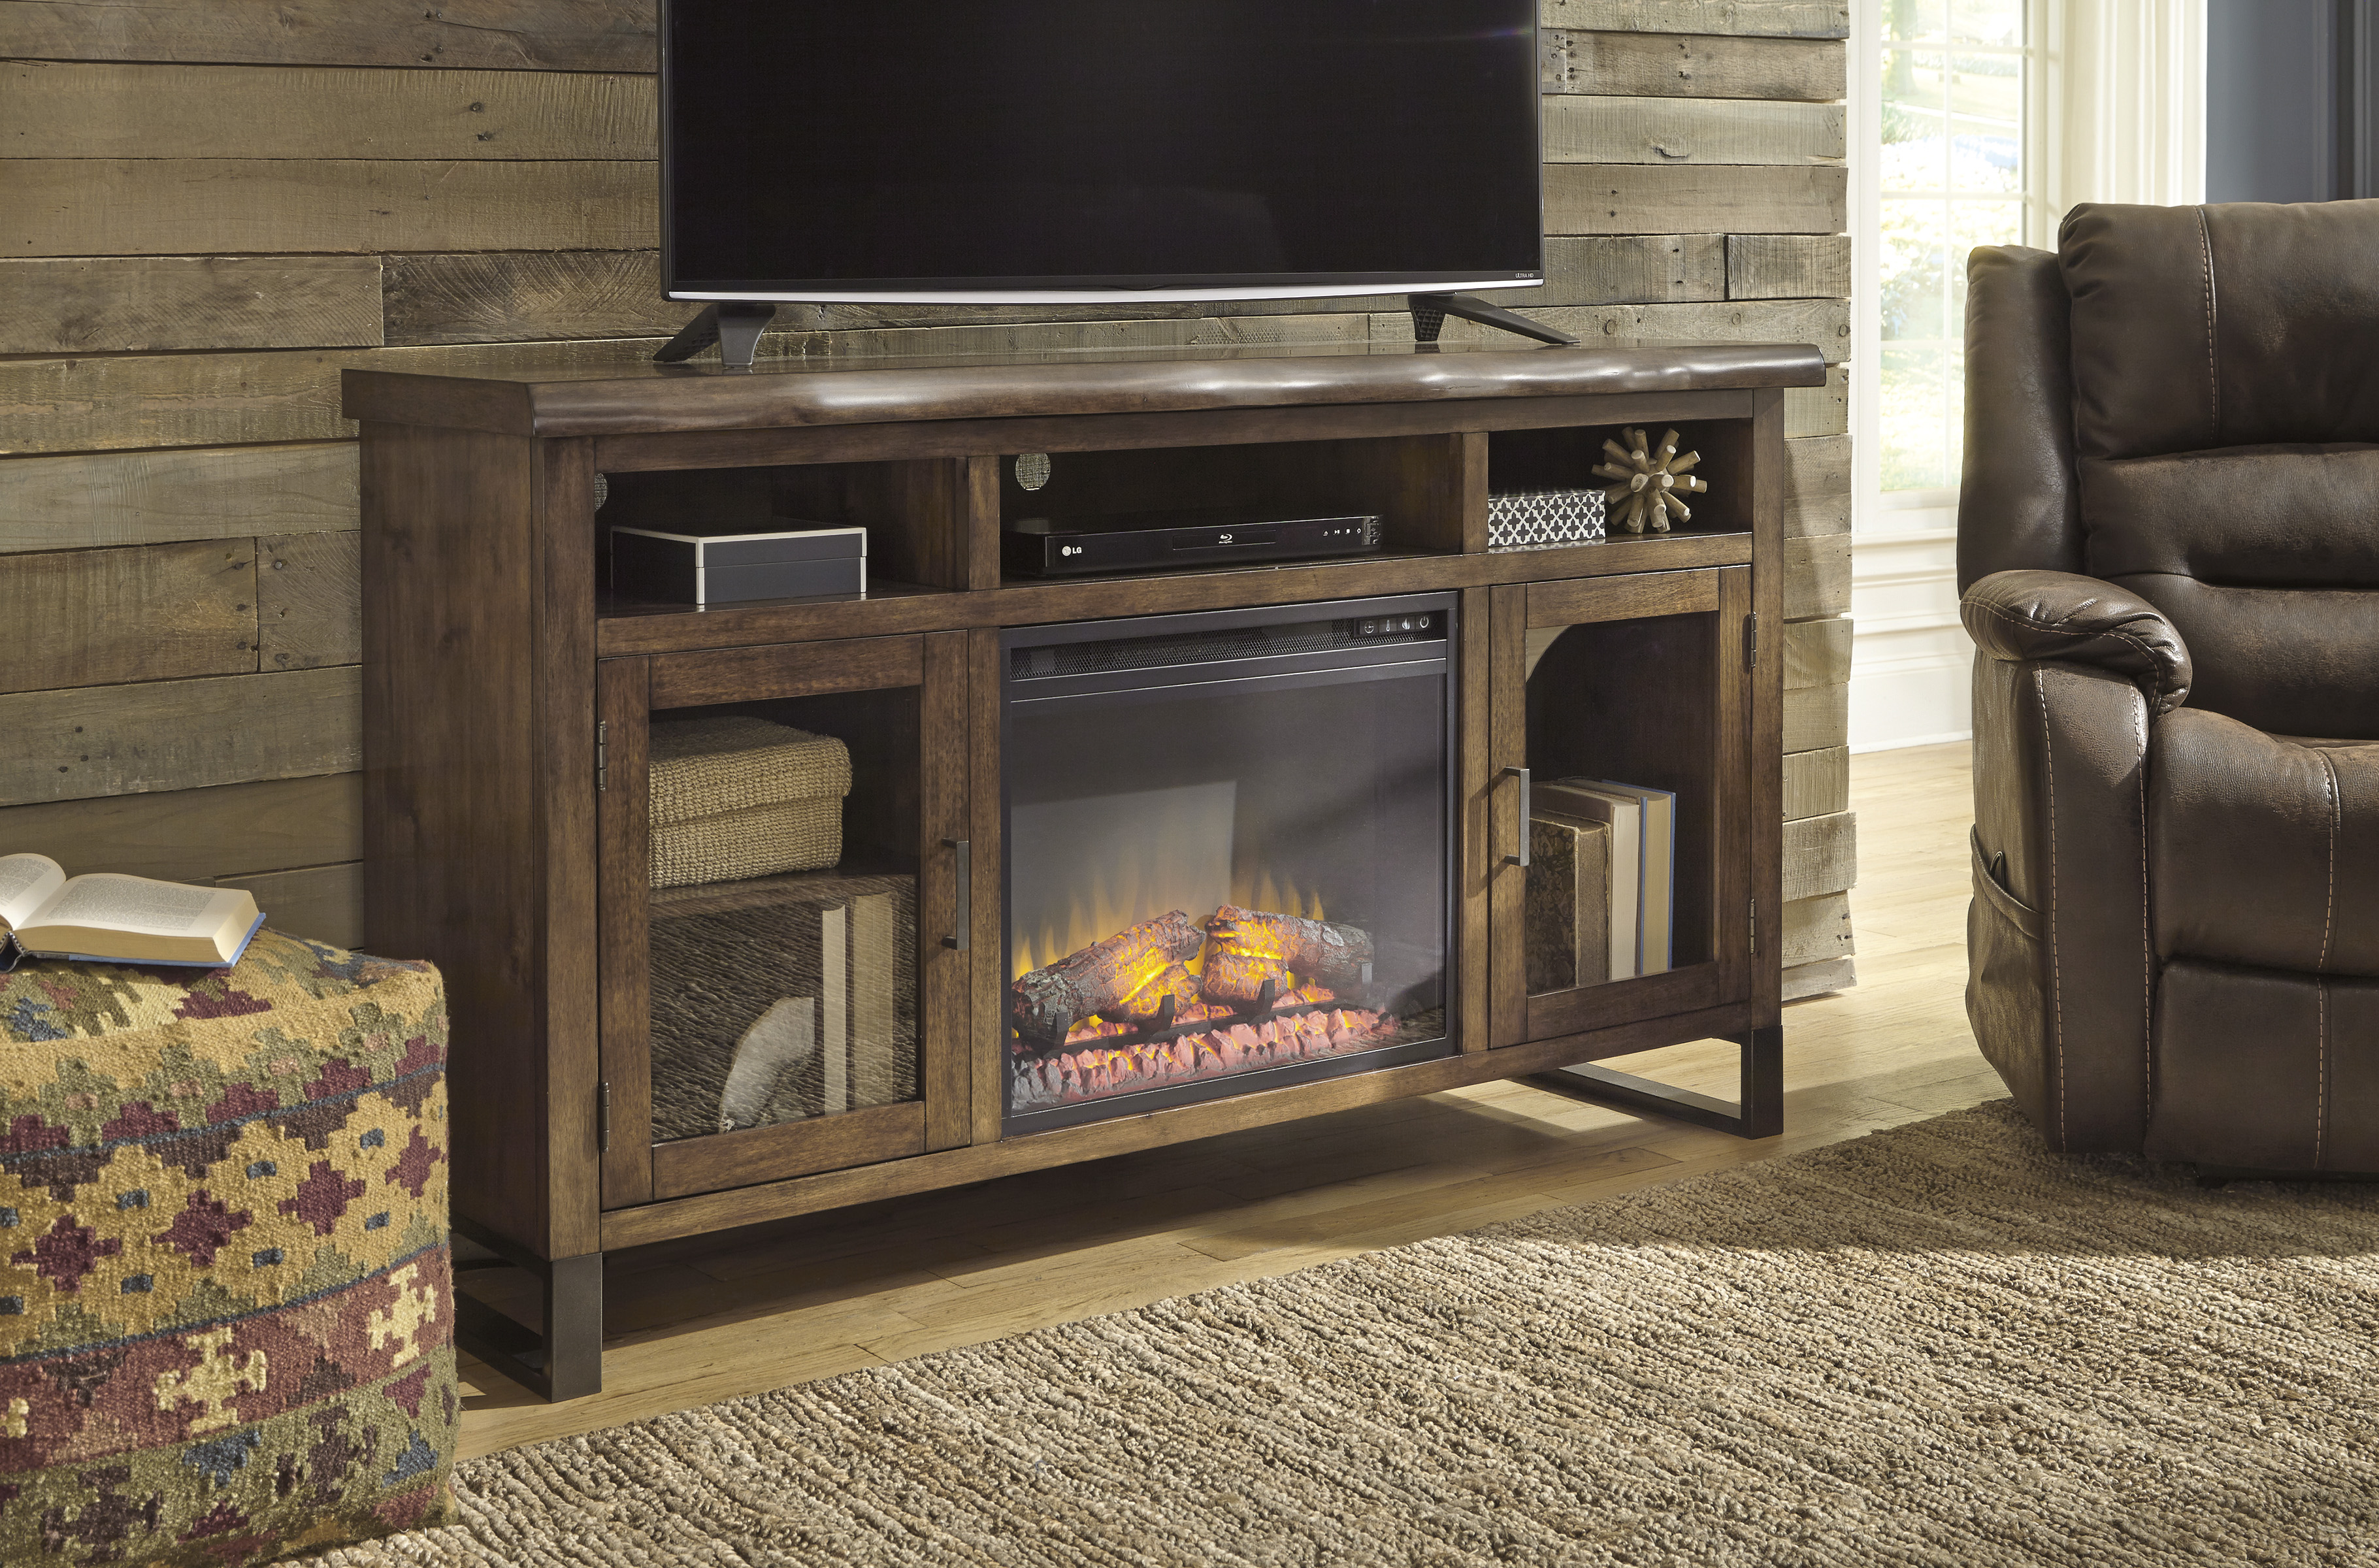 Esmarina Walnut Brown Entertainment Stand  With Log Fireplace  / $19.99 A Week